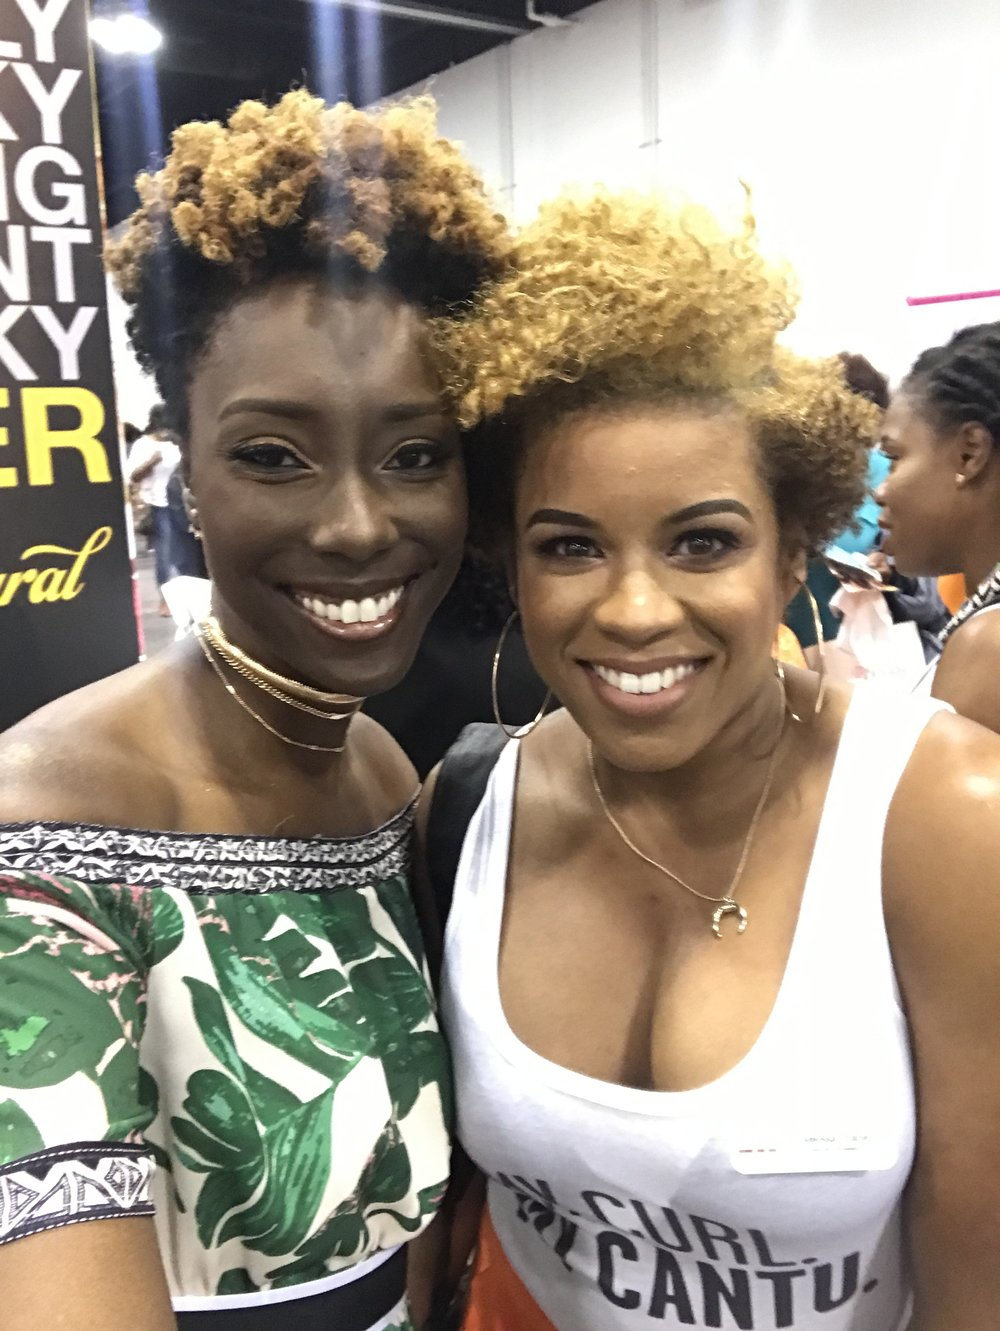 DaynaBolden-World-natural-hair-show-2017-Creme-Of-Nature-18.jpg